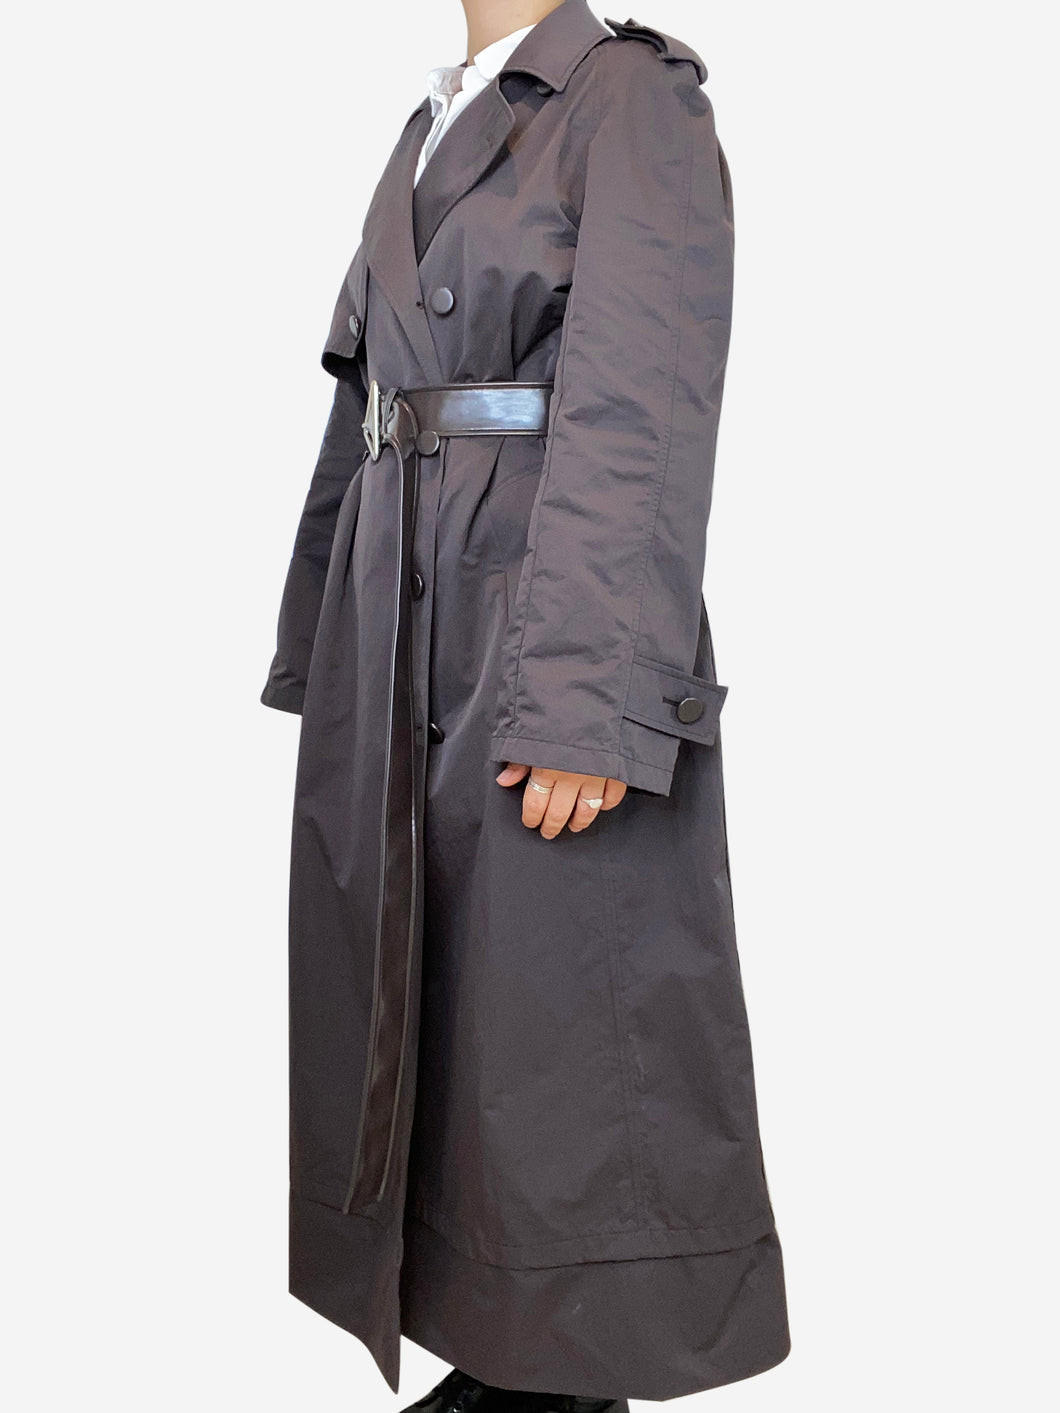 Brown dark brown belted rain coat - size 8